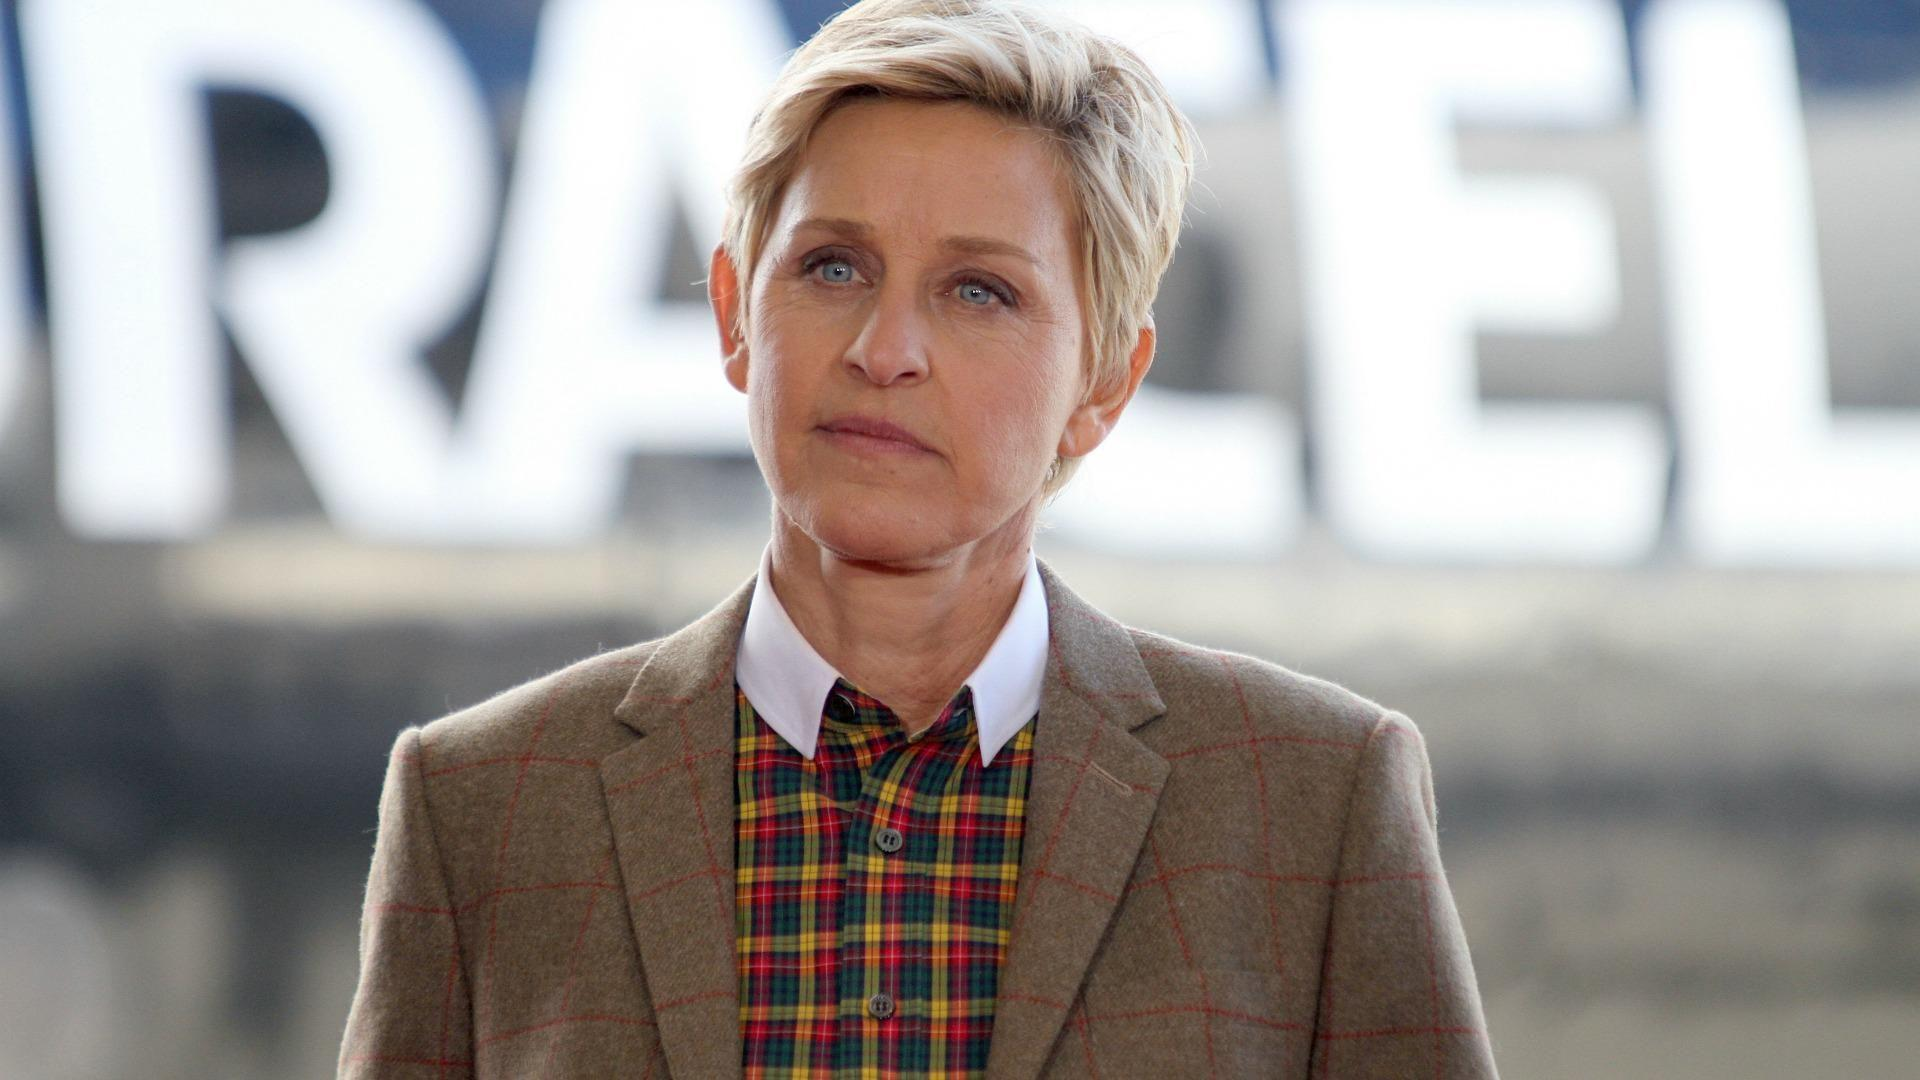 DeGeneres made history this year as the first woman to receive 20 million for a Netflix standup special Combined with the eightfigure check she gets from hosting